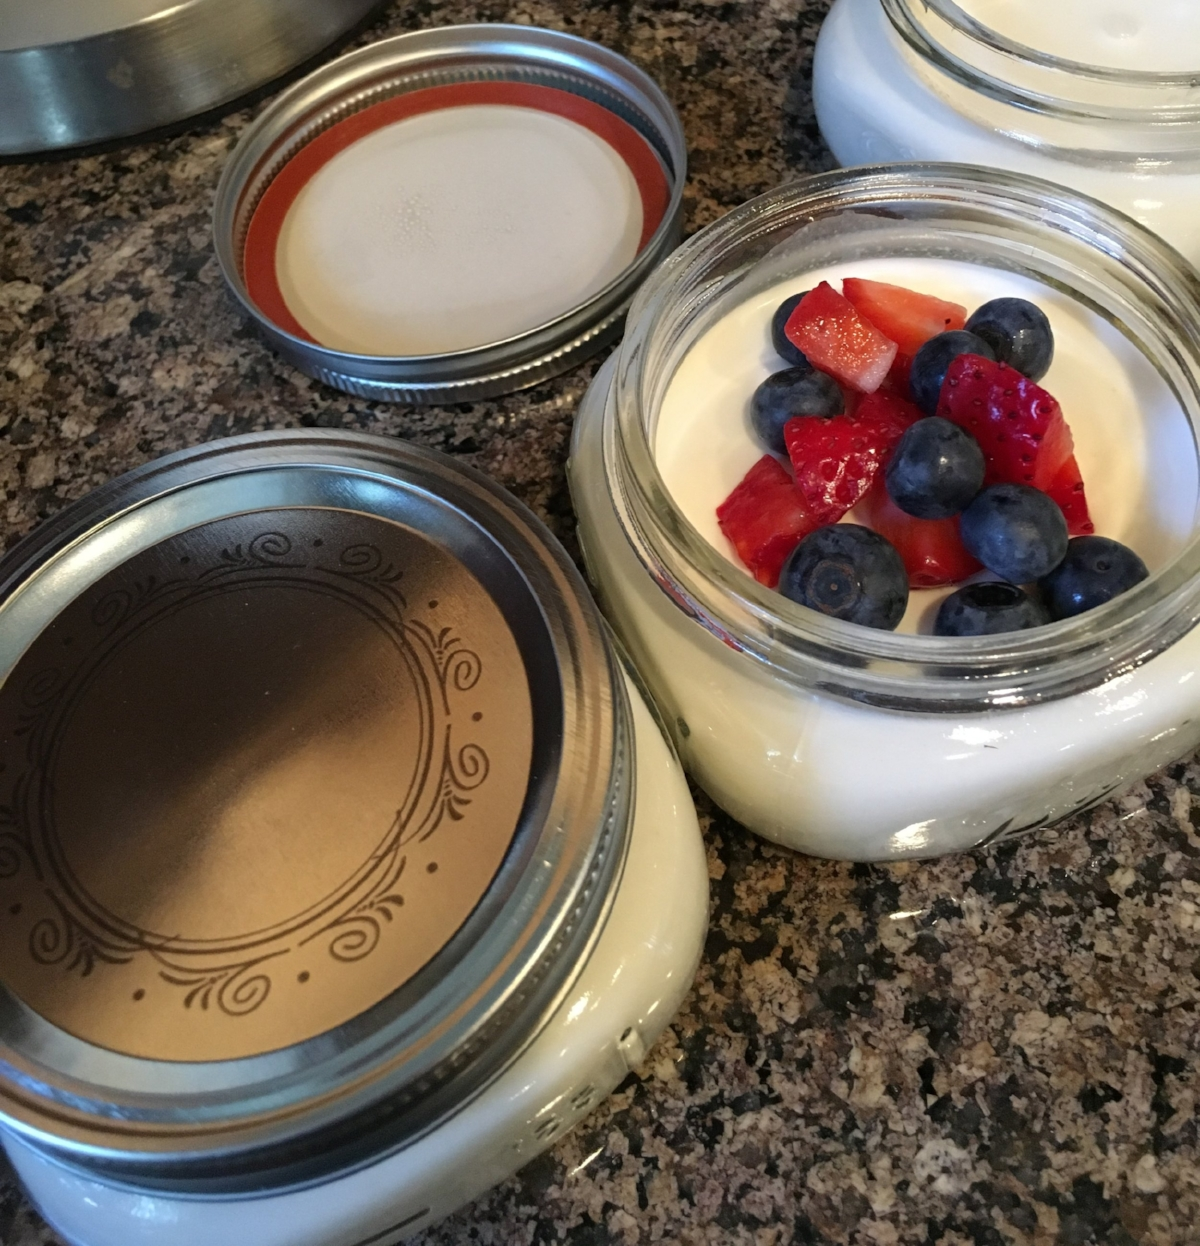 Cute 8 ounce canning jars are easy to pack and look good on the table too.